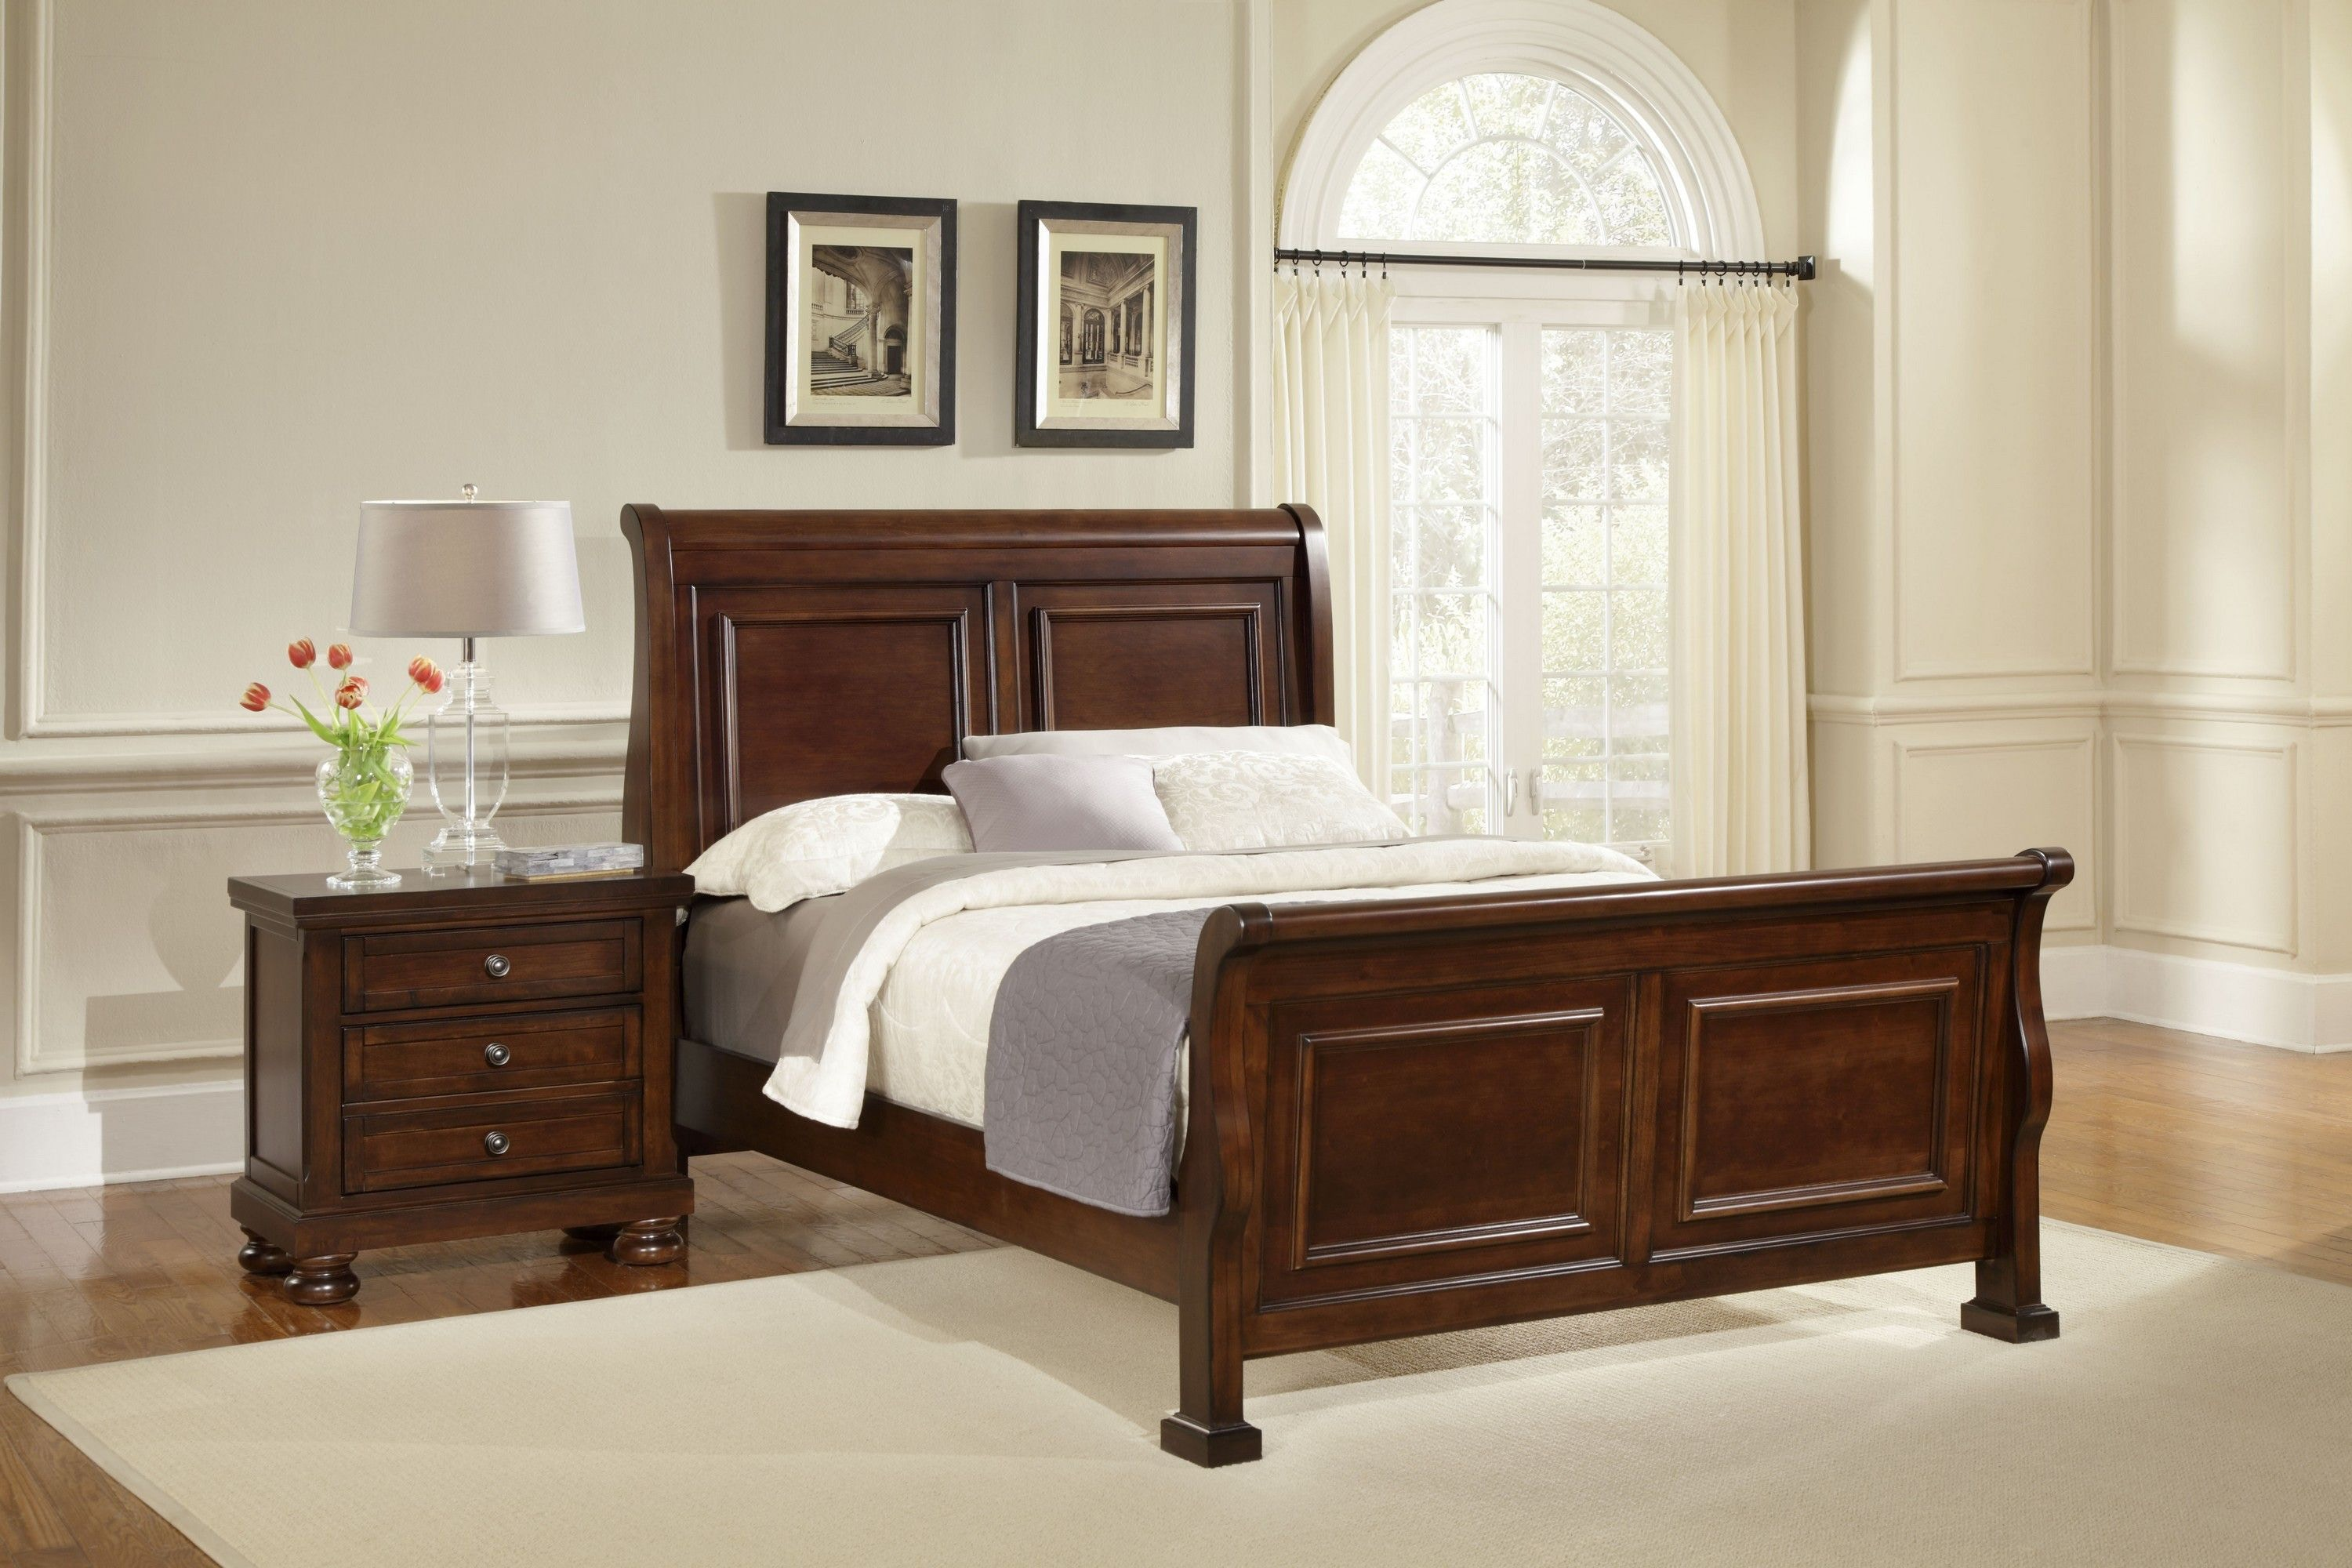 Vaughan Bassett Furniture Company Reflections Sleigh King Bed G54715